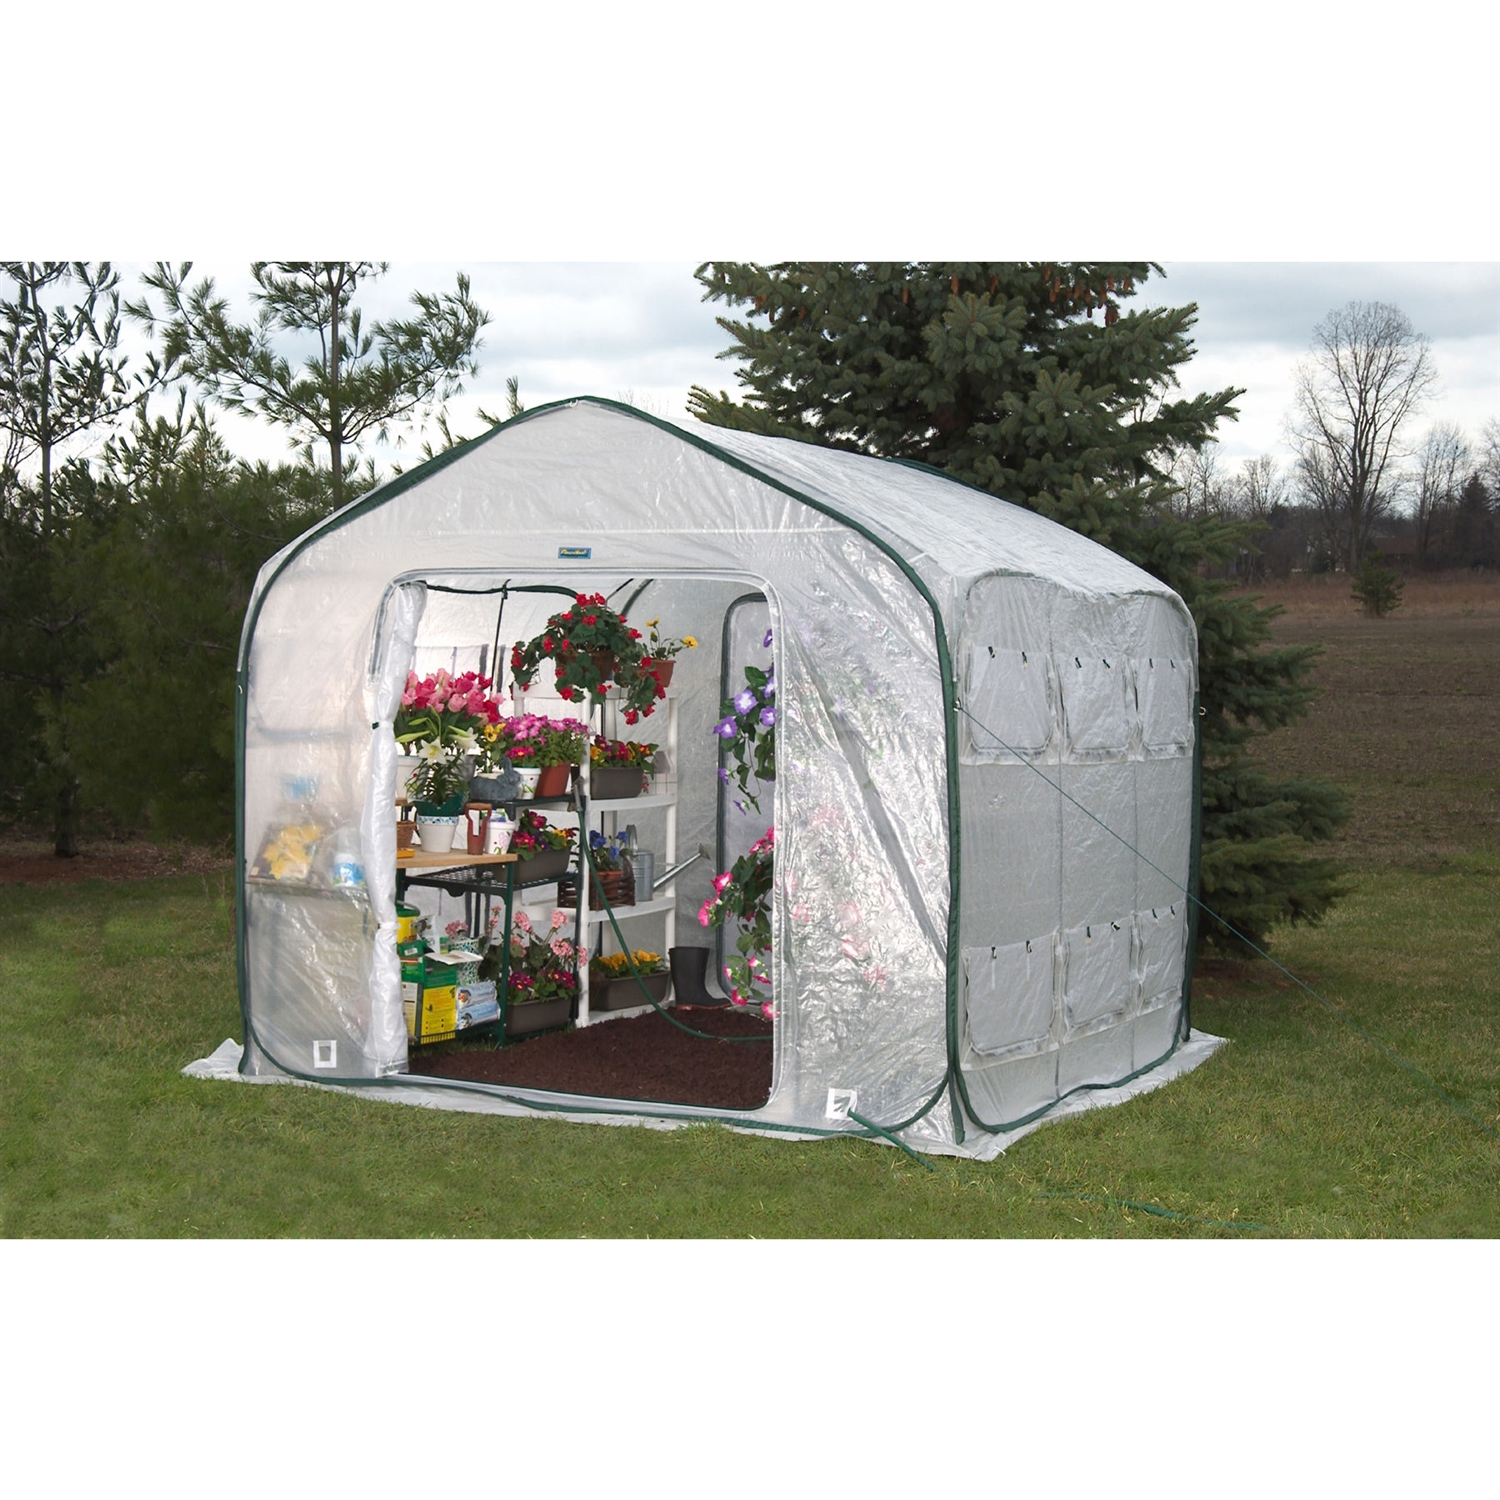 "Farm-House Home Garden UV Resistant Greenhouse (9' x 9'), WFHG270 :  Extend your growing season, protect your plants, and harvest the Farm-House benefits. The unique Farm-House design allows you to zip two or more greenhouses together. This enormous yet totally portable option doubles as a convenient storage shed when you're not growing. The Farm-House features two large zippered doors and twelve windows with screens for easy access, optimum ventilation, and pest protection. Open the doors and windows to create the perfect environment for hardening of plants. Close the screens and windows to promote and maintain high temperature and humidity levels. All Flower-House greenhouses are constructed with the incredibly durable Gro-Tec material. Gro-Tec is UV resistant, weatherproof and features rip stop protection.  Two fully screened doors create optimum air circulation for accelerated growth; Improves climatic conditions in all geographic locations; Sets up easily on soil or hard surface, indoors or outdoors; Compact and lightweight; Four convenient accesses for water hose or power cord; Unique zip together design allows you to connect two or more Farmhouse greenhouses together! Comes with instruction manual and greenhouse guide 12"" long ground stakes, nylon cord high wind tie-downs, shade cover, fiberpoles, and carry pack included; Covered by a three year manufacturer's warranty; Minimal assembly required.   Shelves and plants not included; Night time temperatures inside your Flowerhouse greenhouse will drop to outside temperatures without an additional heating source; 3 year limited warranty; Please Note: Warranty is not valid until the warranty card is filled out and returned within 14 days of purchase; Panel Material: Polyethylene; Features: Built-in Air Flow Vents, No Foundation Needed, Portable, Light Weight; Type: Hobby Greenhouse, Home Garden."